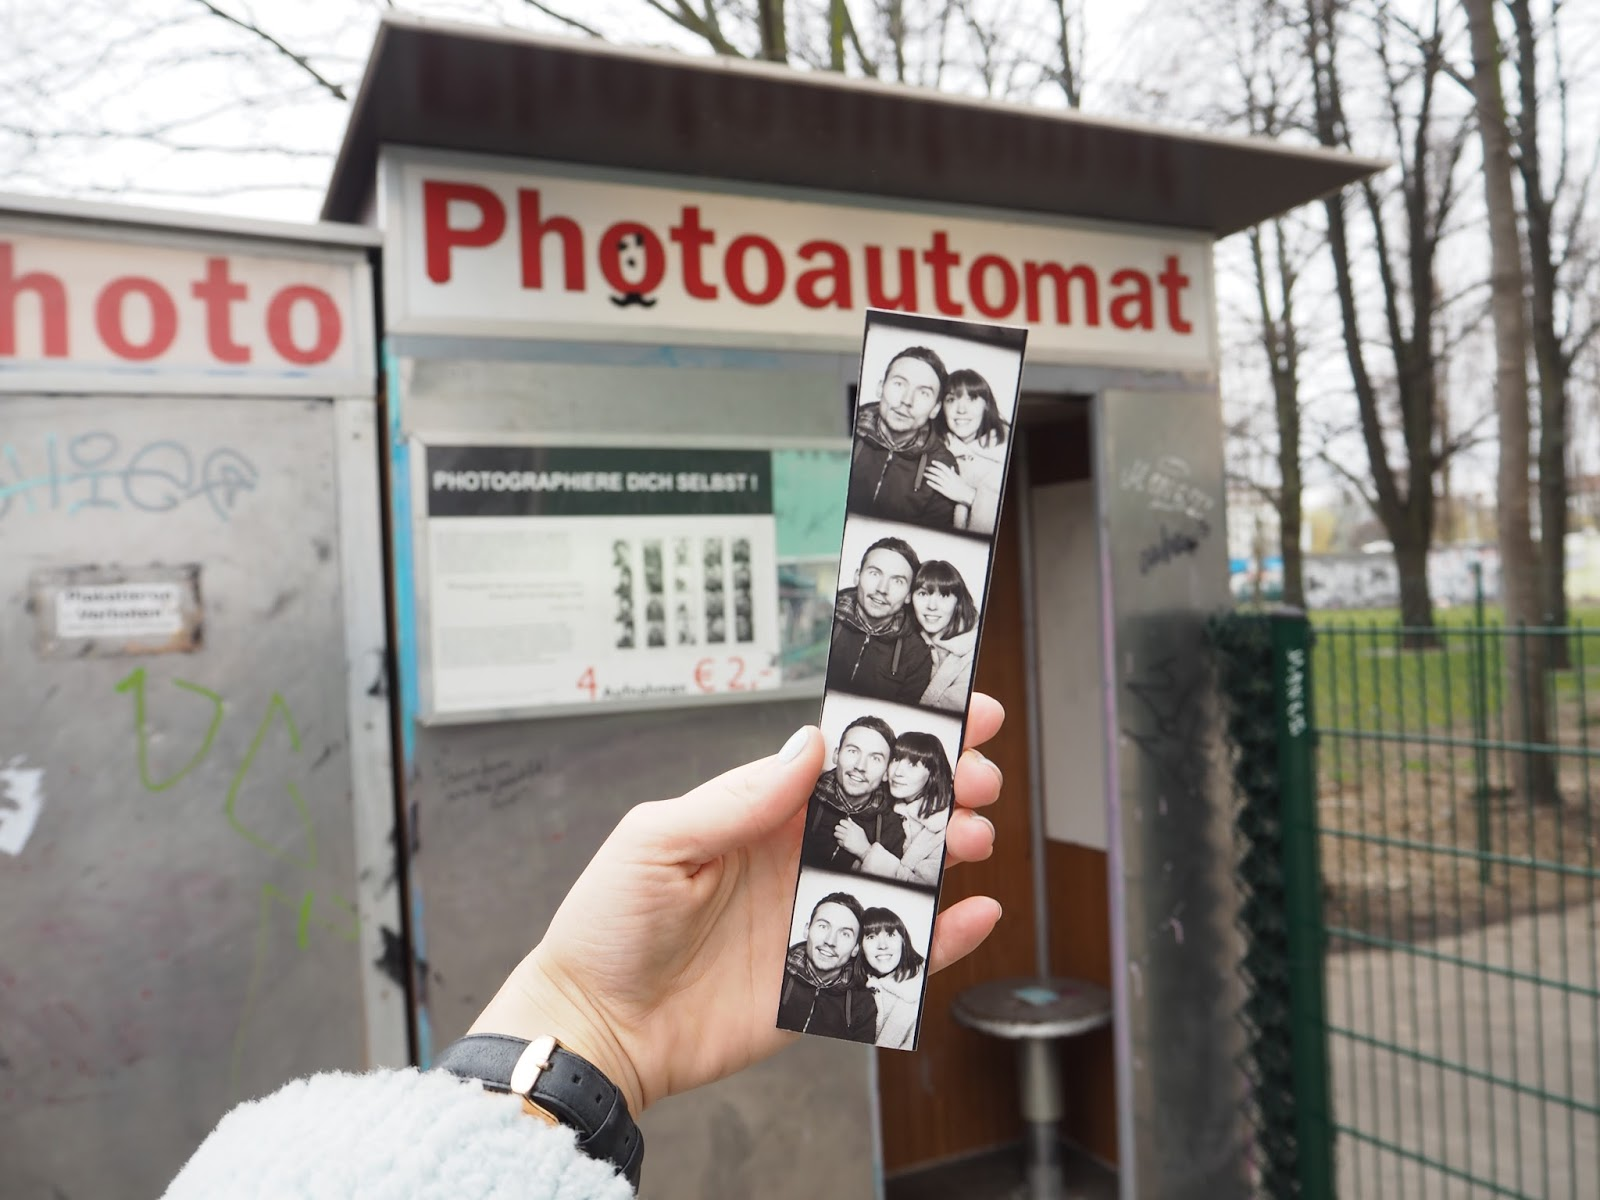 Photoautomat photobooth in Berlin